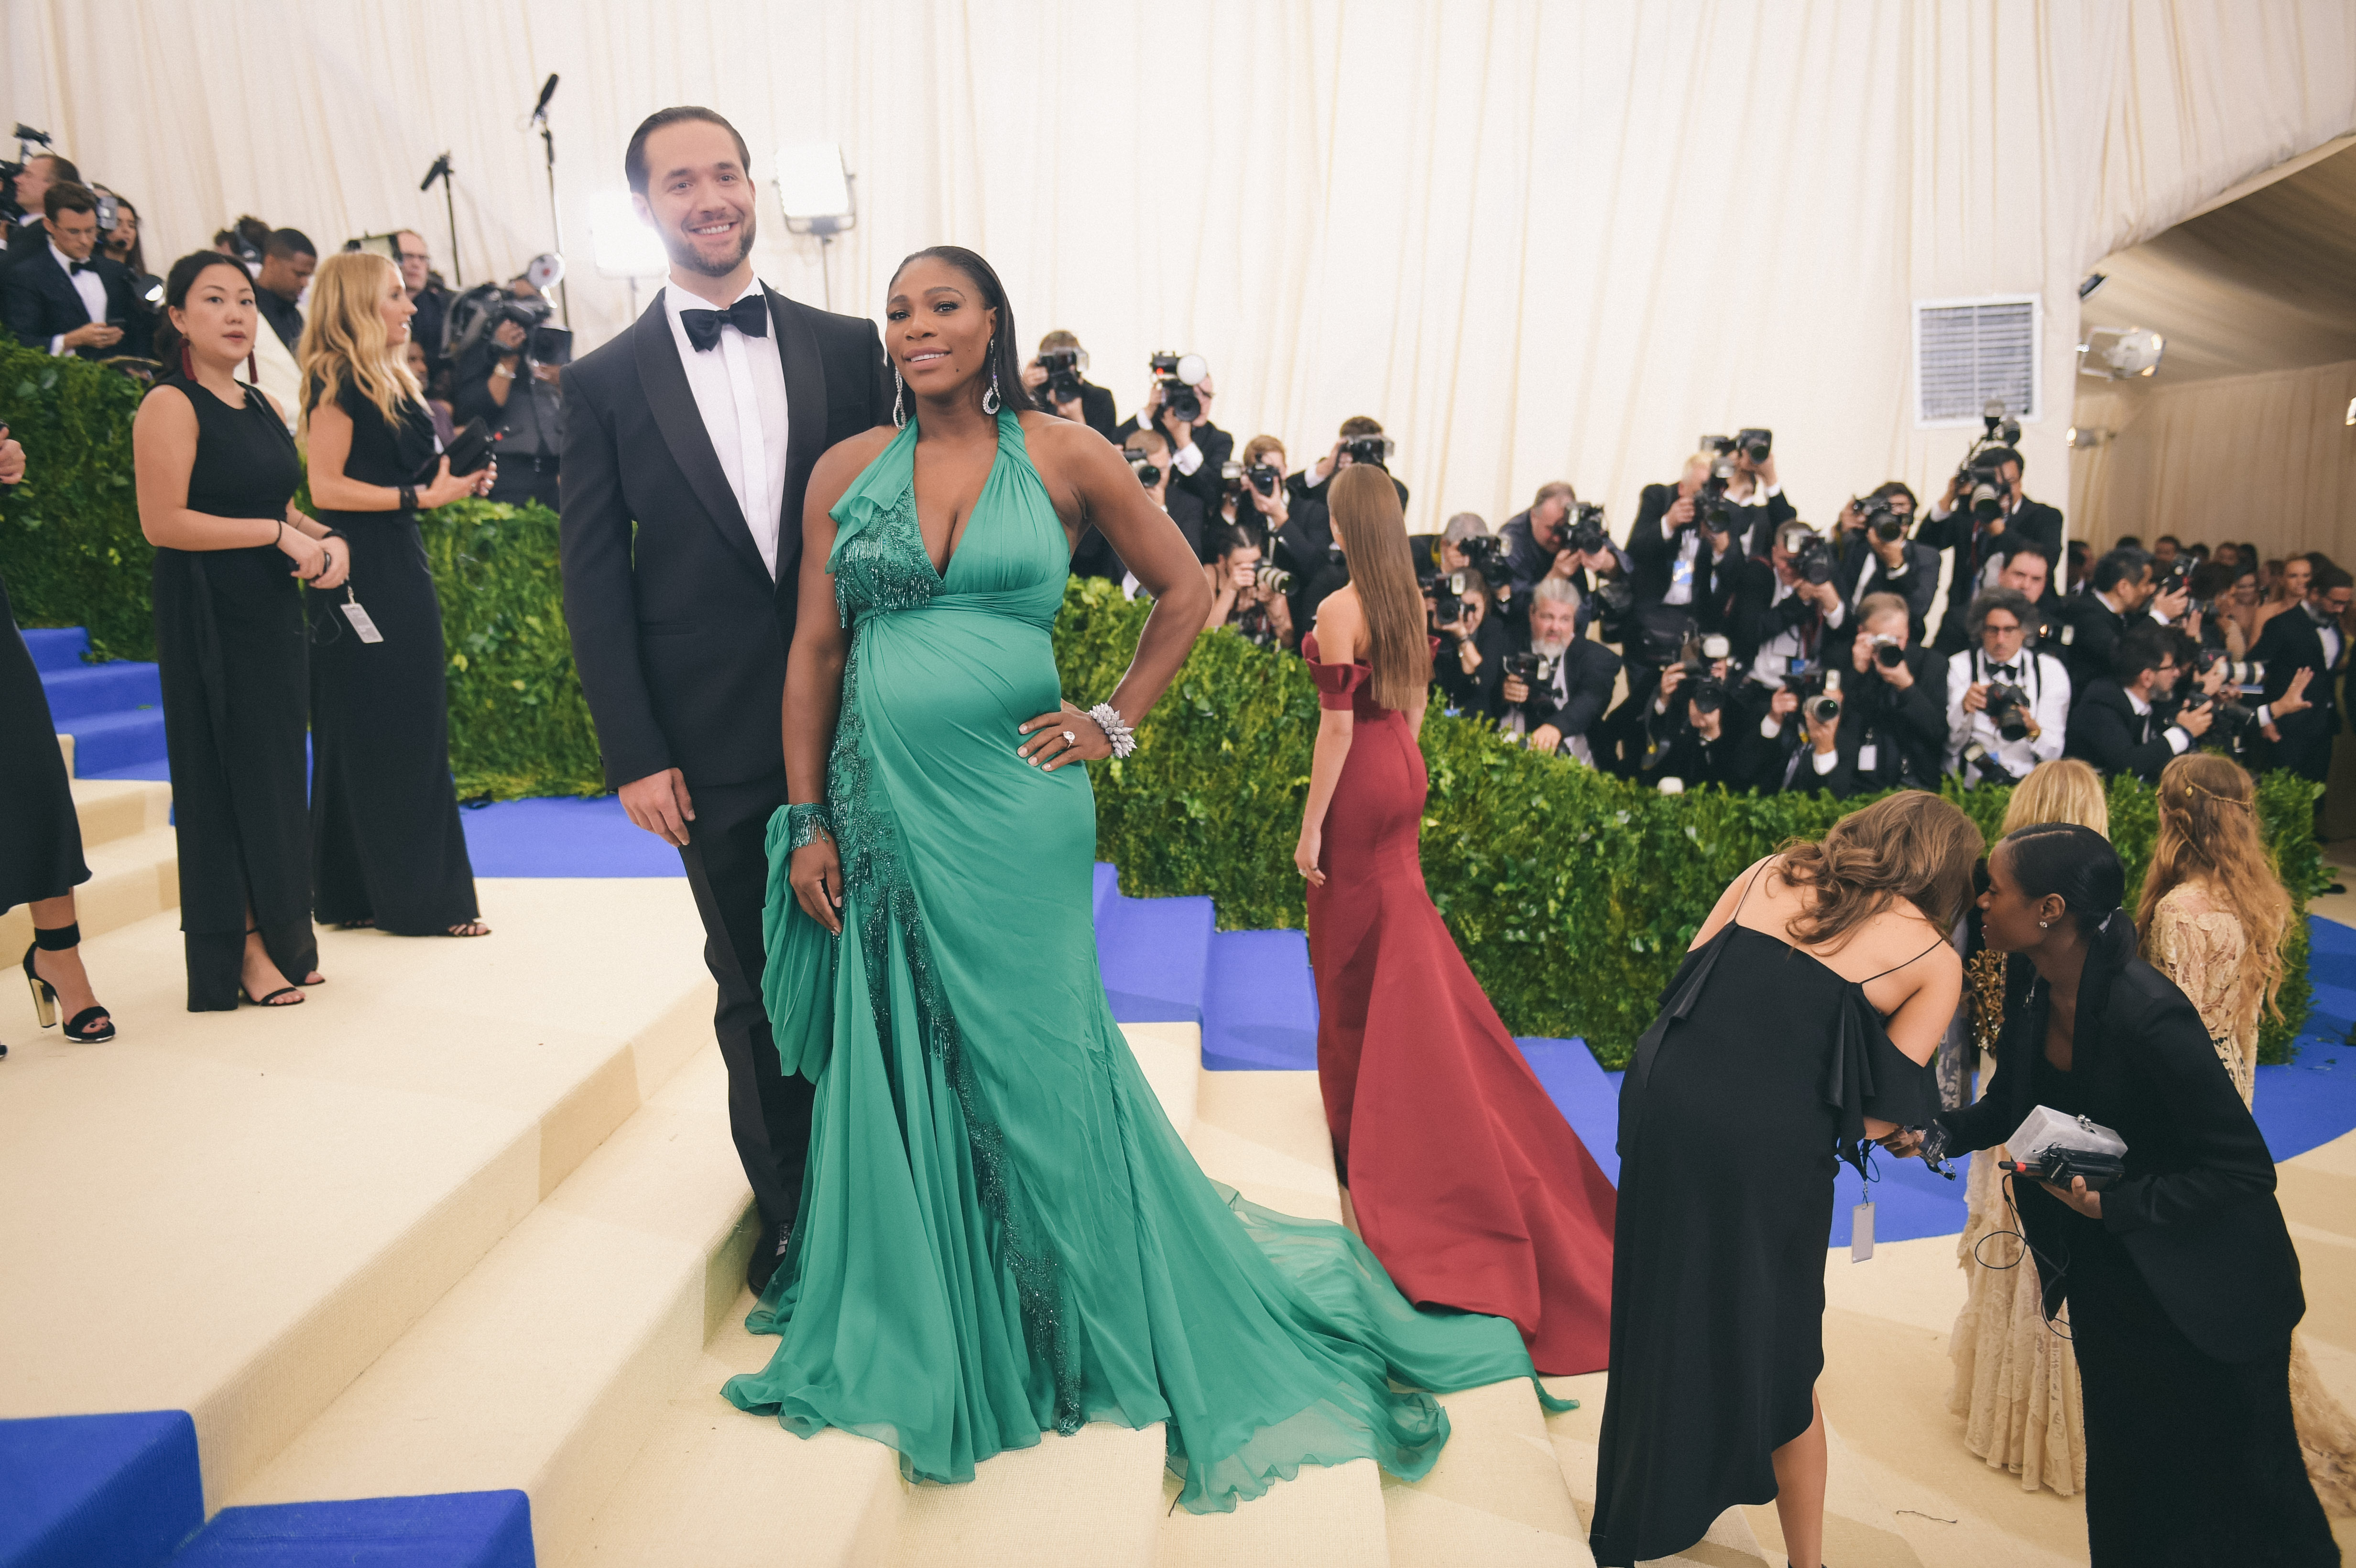 NEW YORK, NY - MAY 01: Alexis Ohanian and Serena Williams attend the  Rei Kawakubo/Comme des Garcons: Art Of The In-Between  Costume Institute Gala at Metropolitan Museum of Art on May 1, 2017 in New York City. (Photo by J. Kempin/Getty Images)